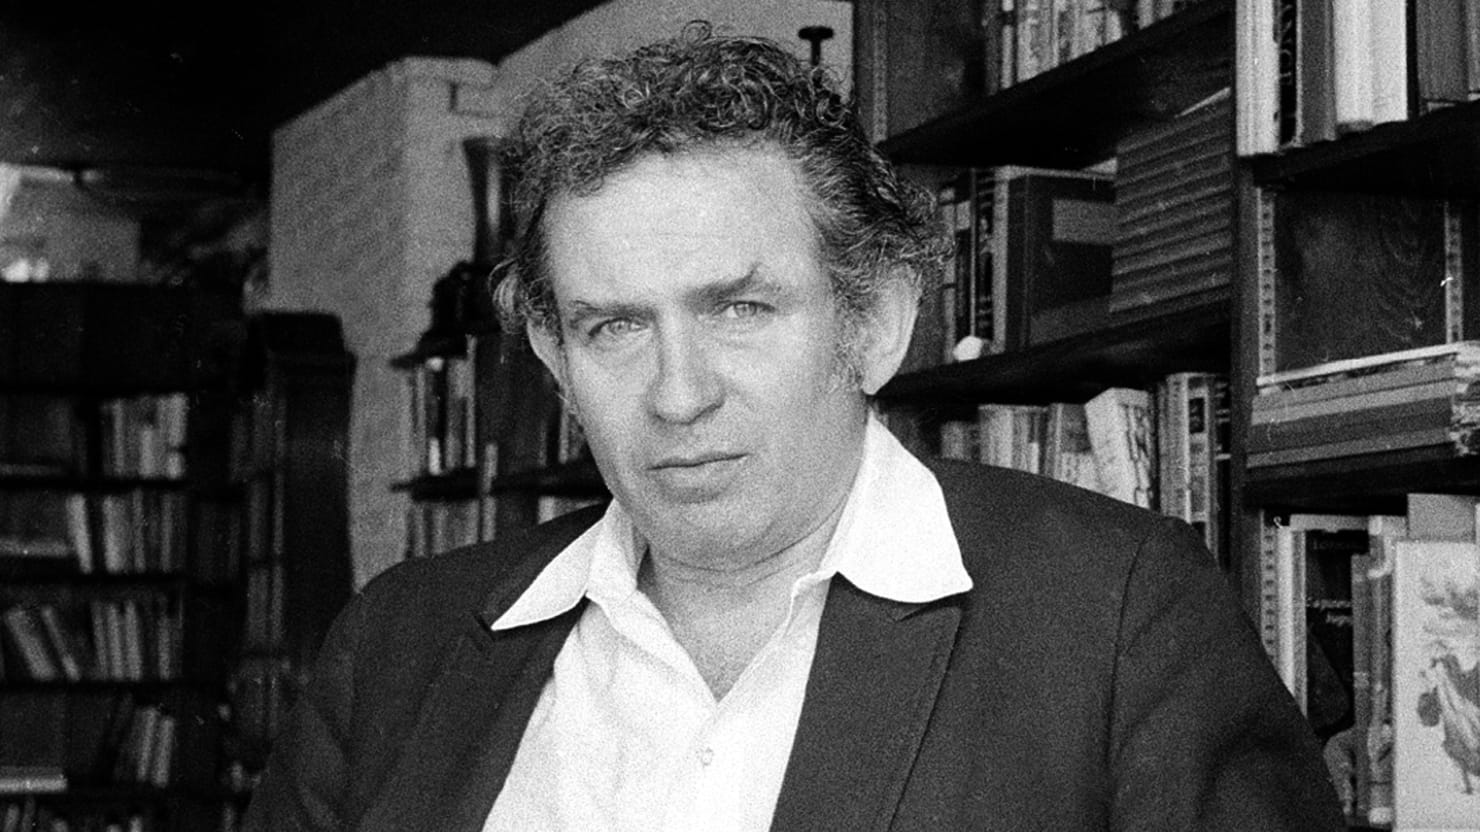 norman mailer essay contest Prestigious contest began in 1923 and its winners include such notable people as sylvia plath, robert redford, joyce carol oates and truman s in seventh through twelfth grade may submit work in one or more of the following categories: dramatic script, flash fiction, humor, journalism, personal essay, persuasive writing, poetry, science fiction .